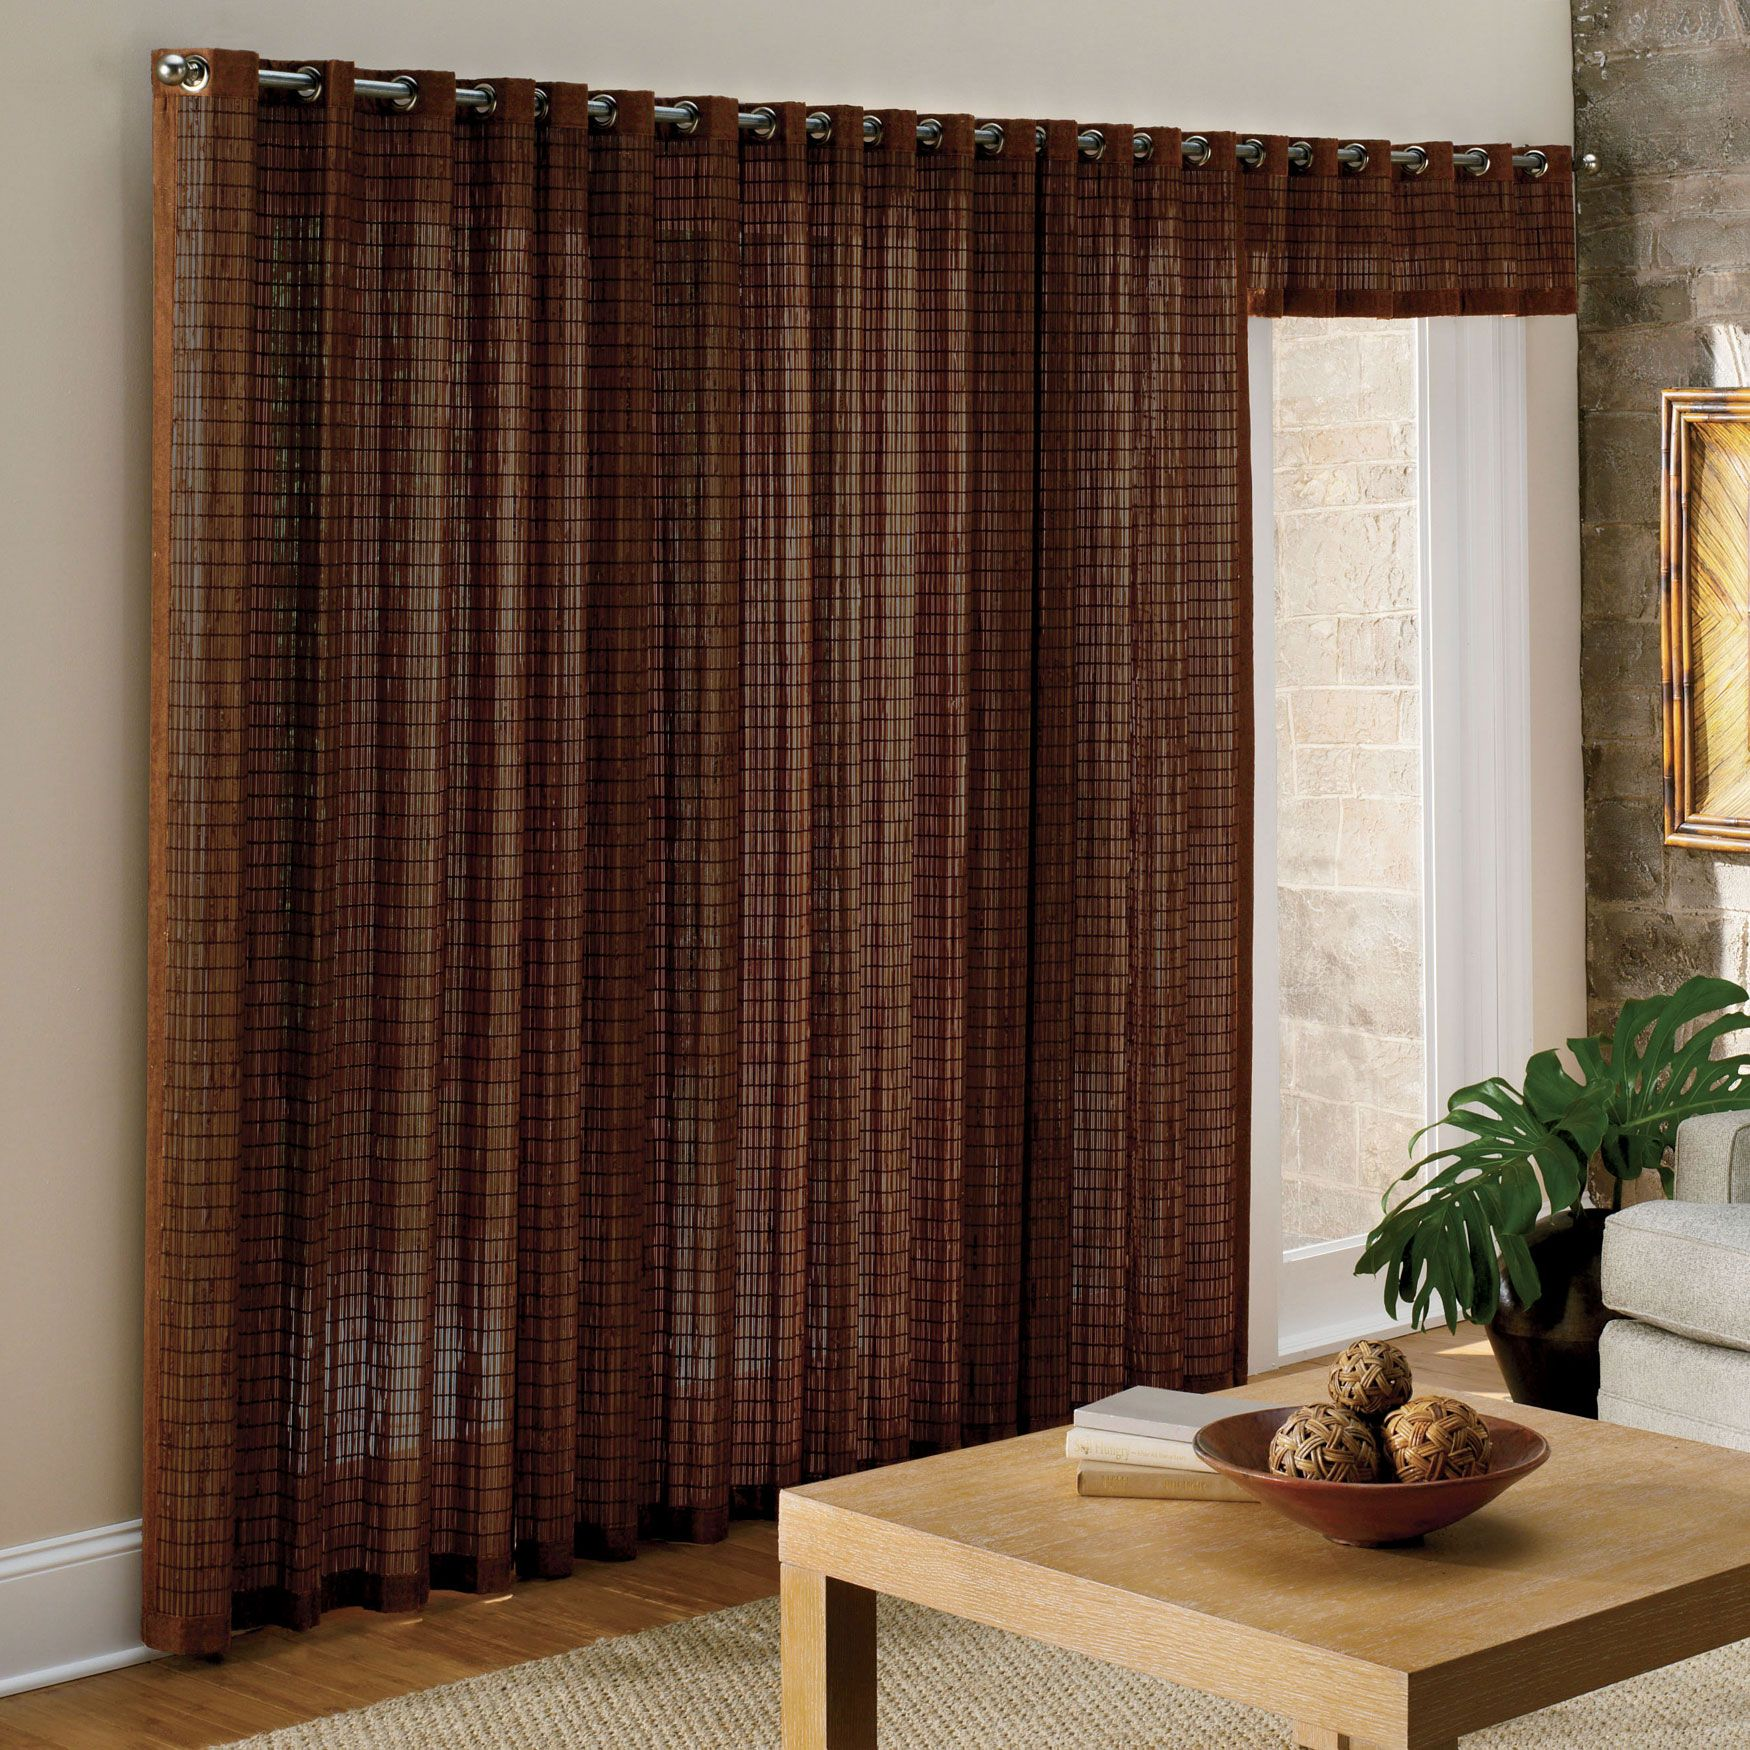 Curtains For Sliding Gl Doors Be Equipped Window Treatments Bamboo Grommet Panel Valance D Brylanehome